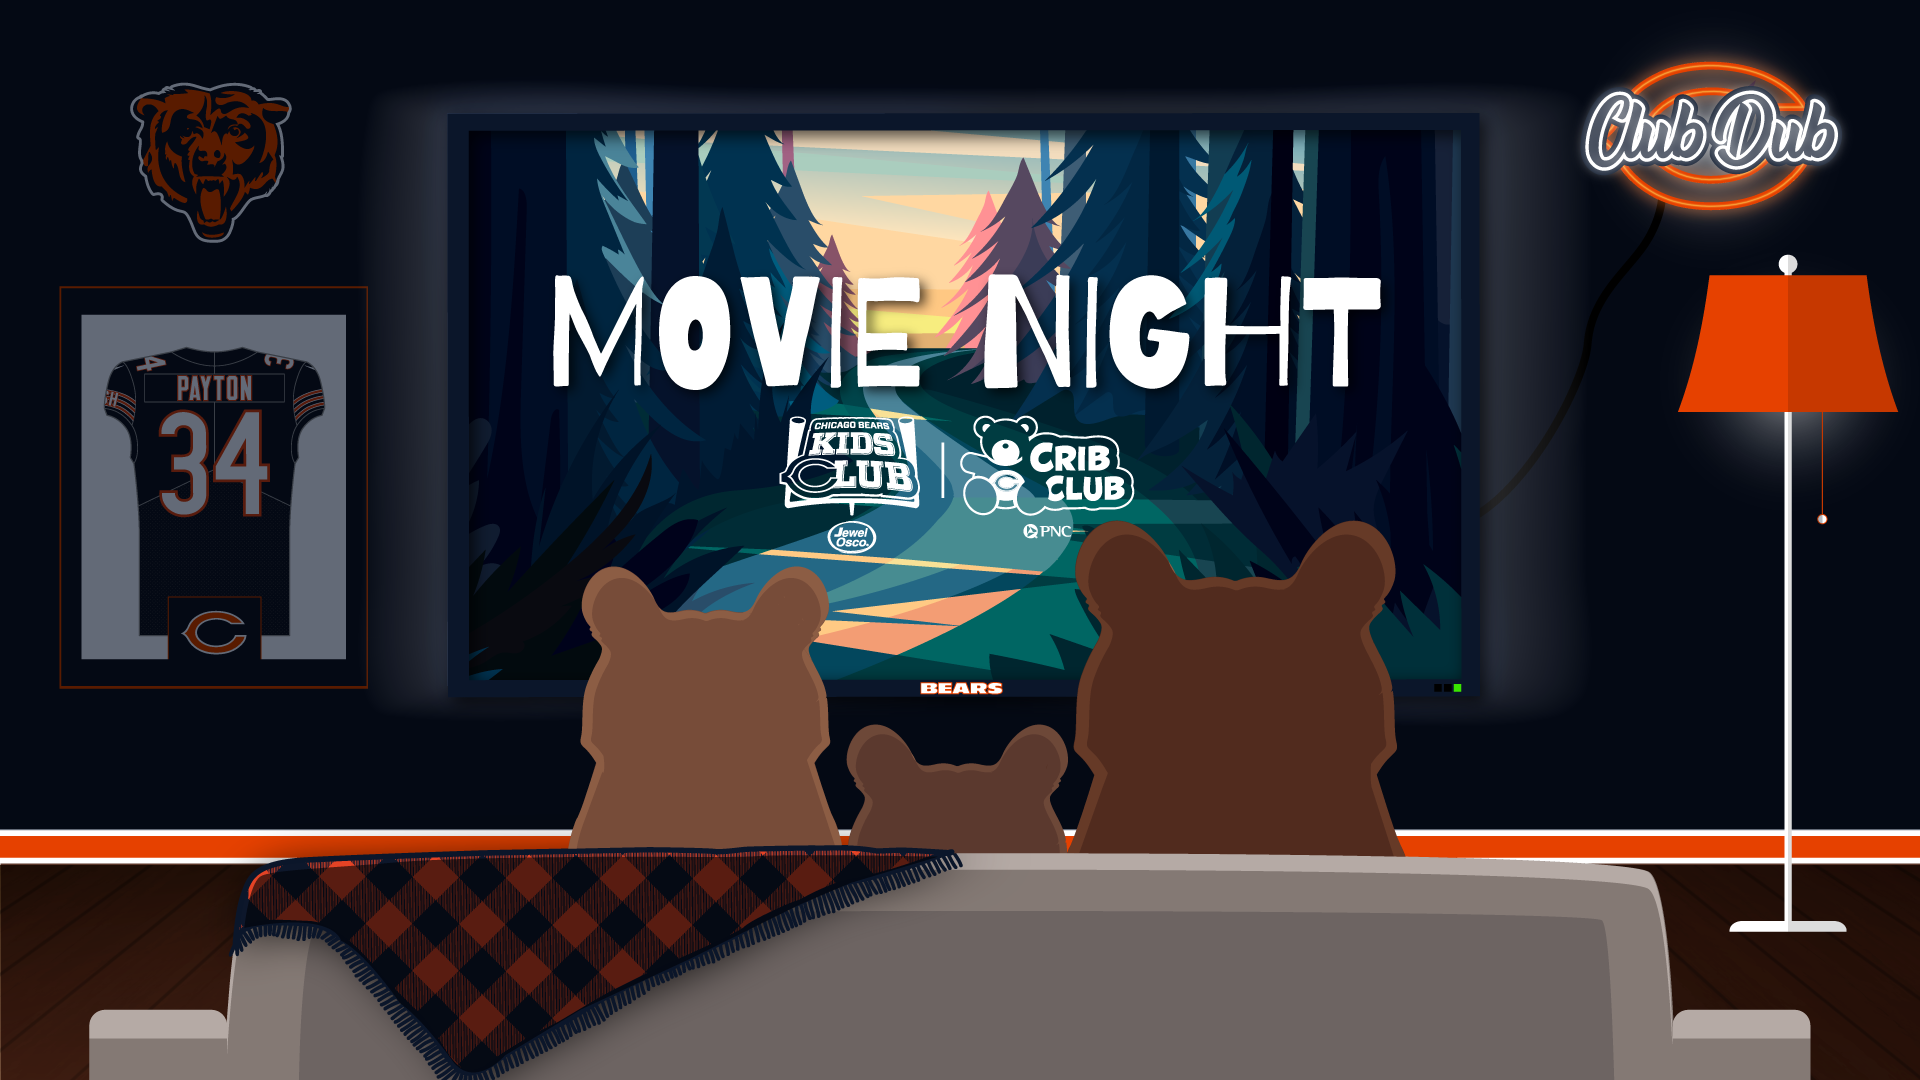 movie-night-promo-102920